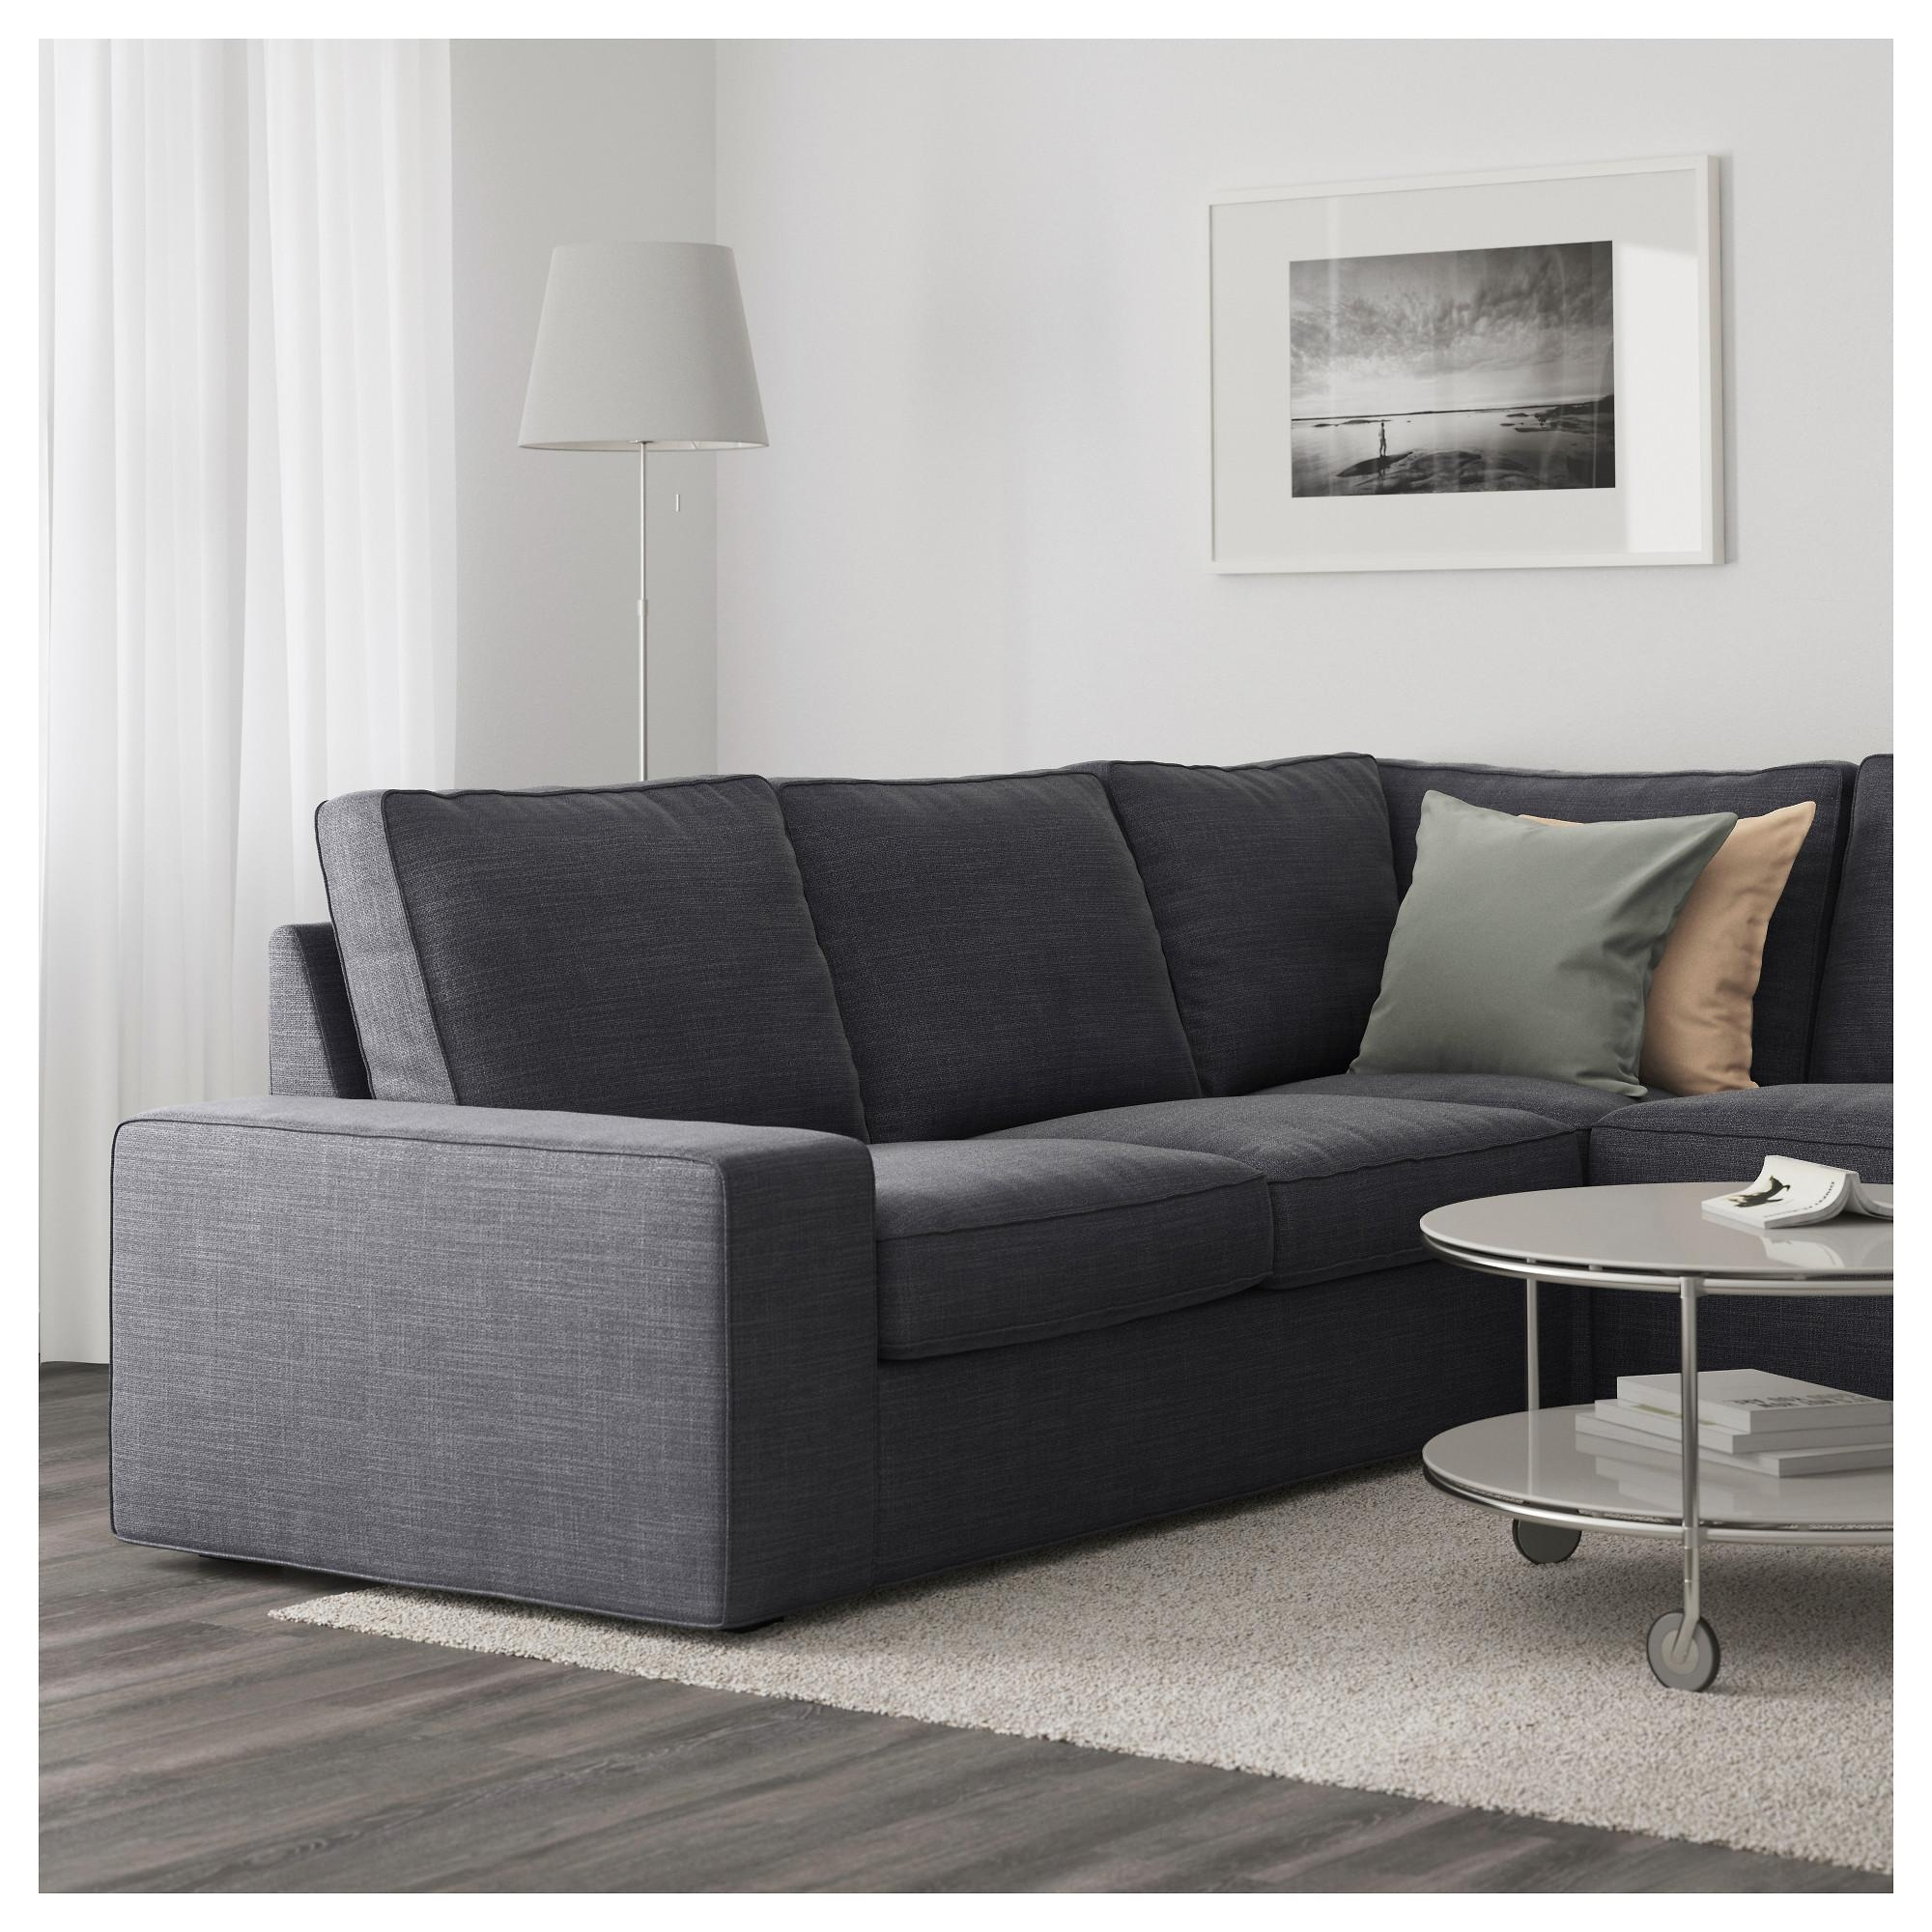 Sofas Center : Ikea Corner Sofa Unusual Photos Design With Storage In Unusual Sofa (Image 9 of 20)